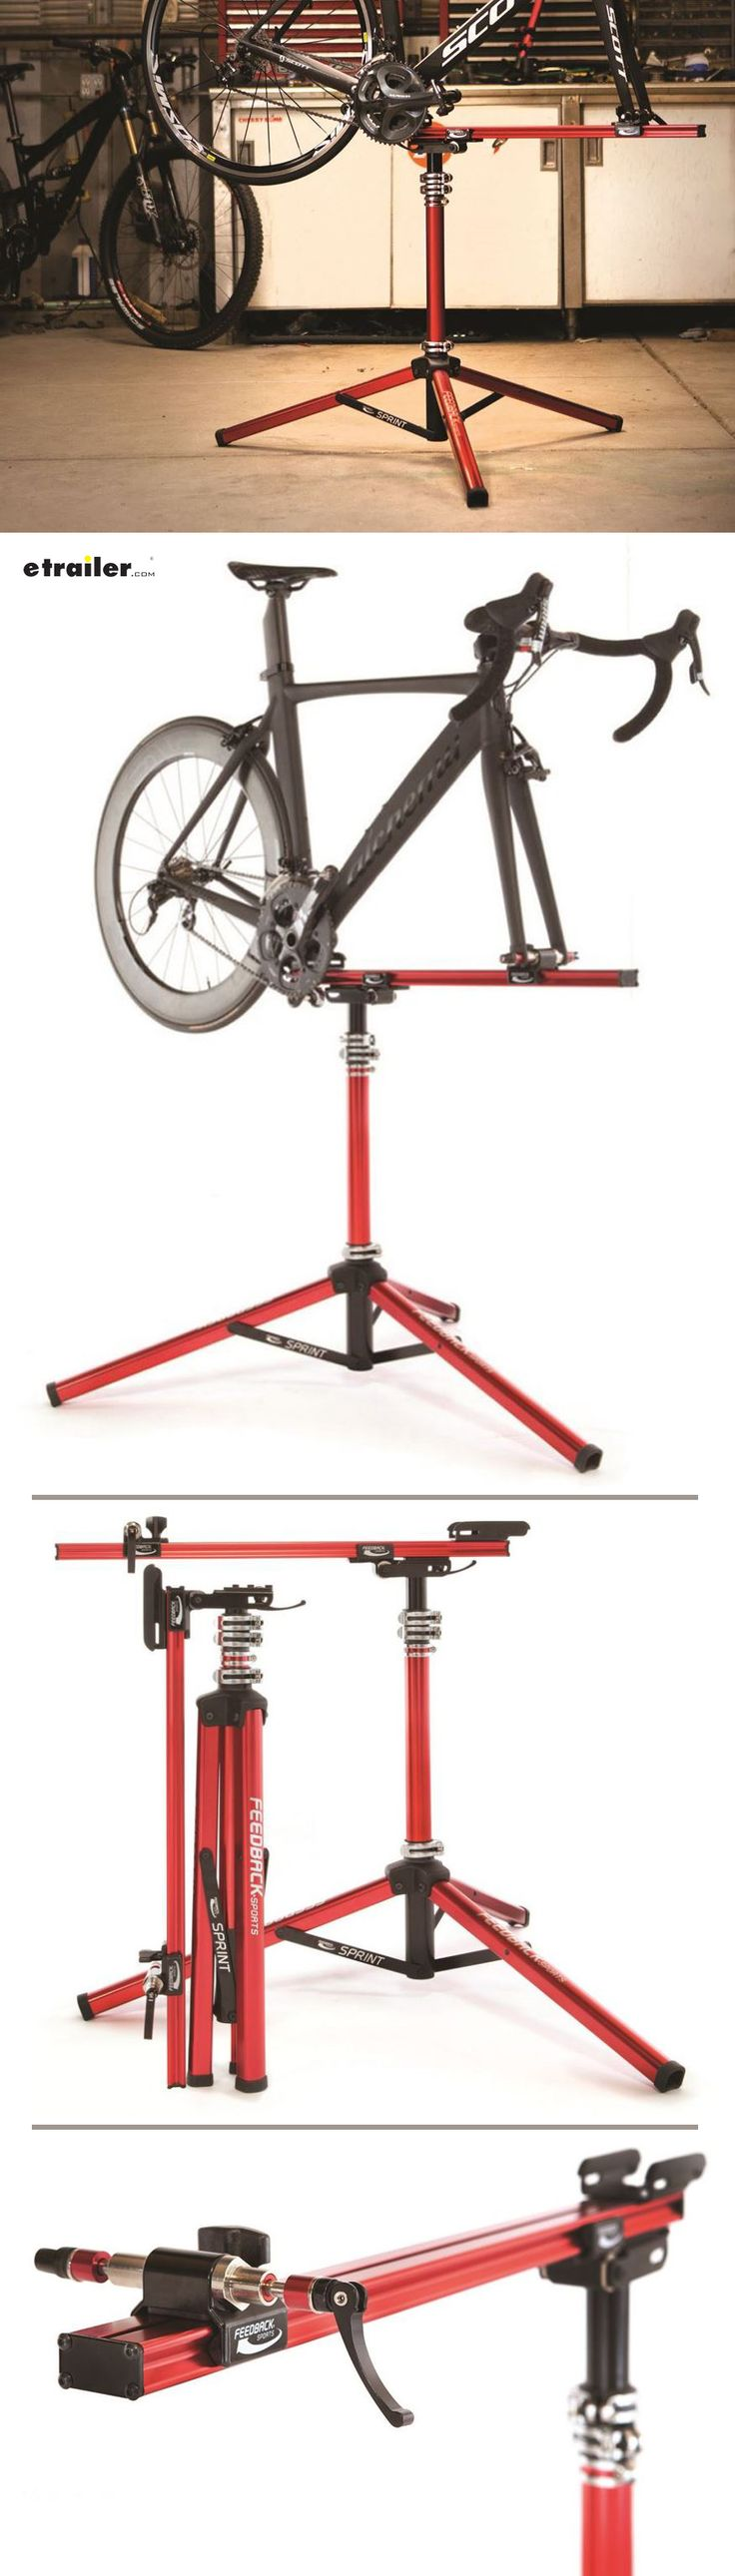 Make working on your bike easy with this Feedback Sports Sprint bike work stand. Stable tripod design allows 360-Degree bicycle rotation.